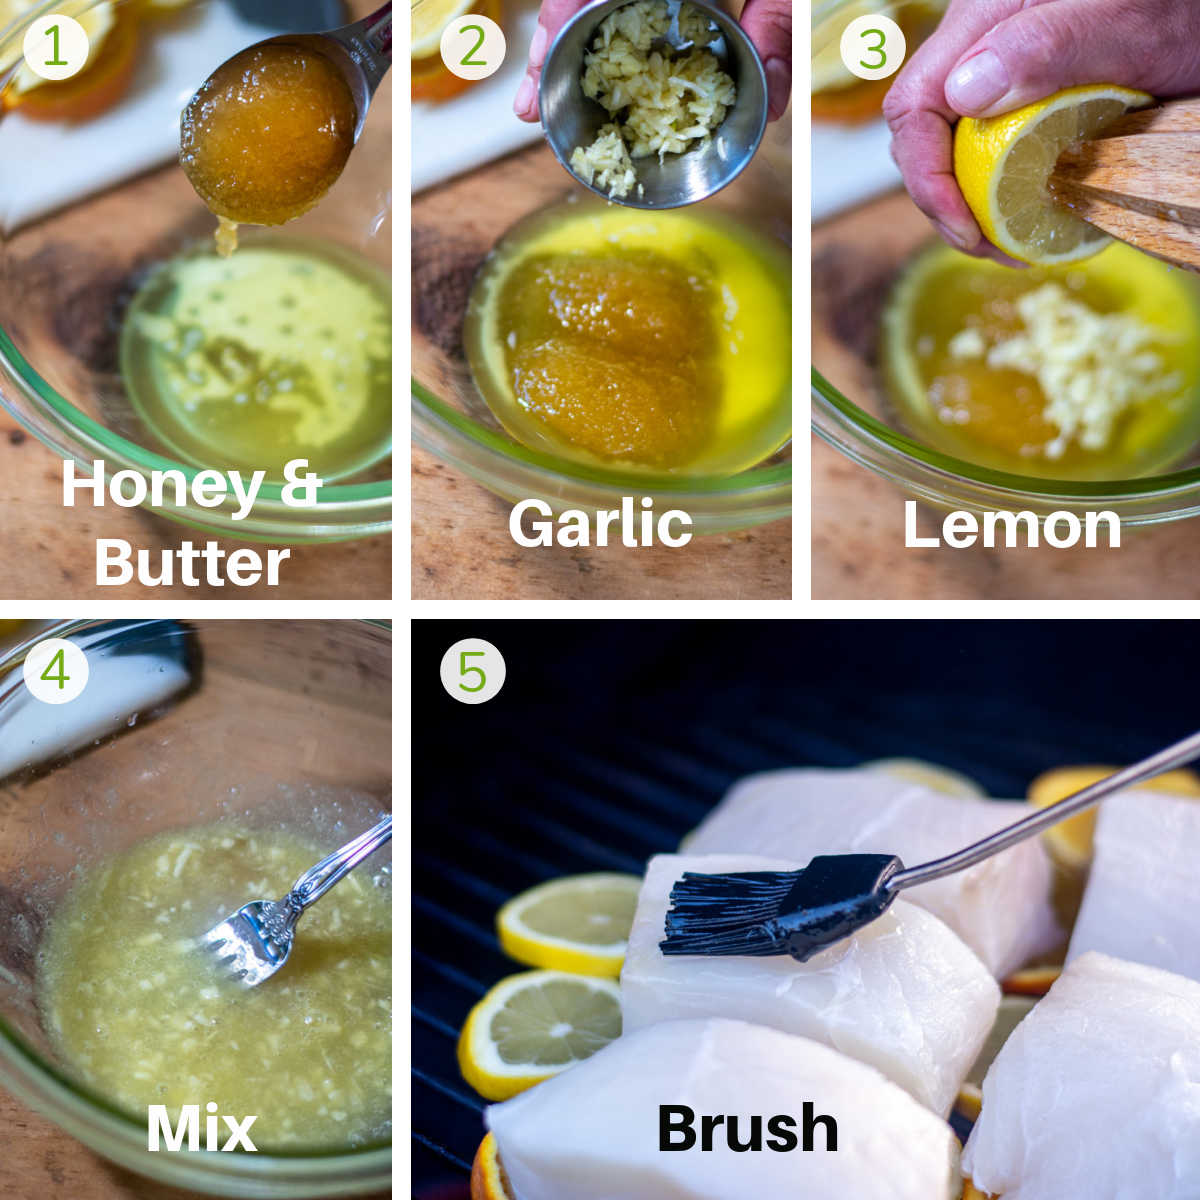 process shots showing how to combine the honey, butter, garlic, lemon and use it as a baste to brush on the halibut fillets.